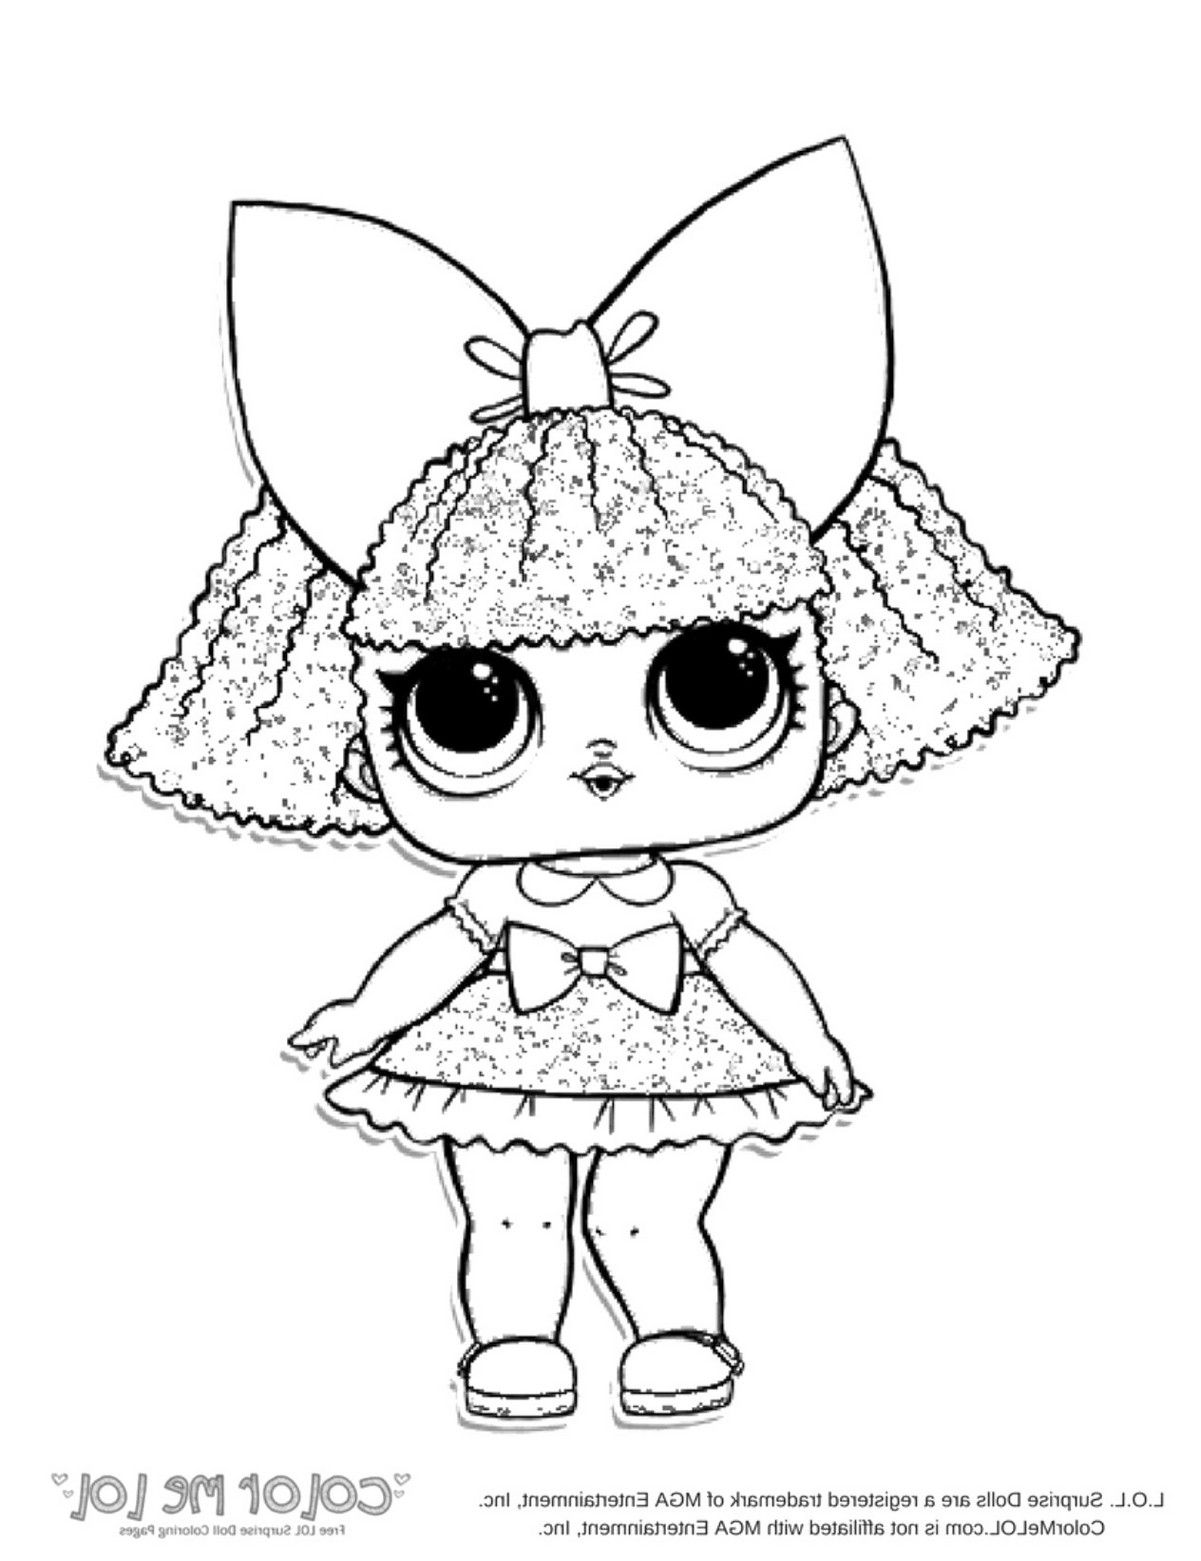 I Love You Baby Coloring Pages New Free Printable Lol Surprise Dolls Fresh Of Prin Doll Lol Puppen Malvorlage Einhorn Wenn Du Mal Buch